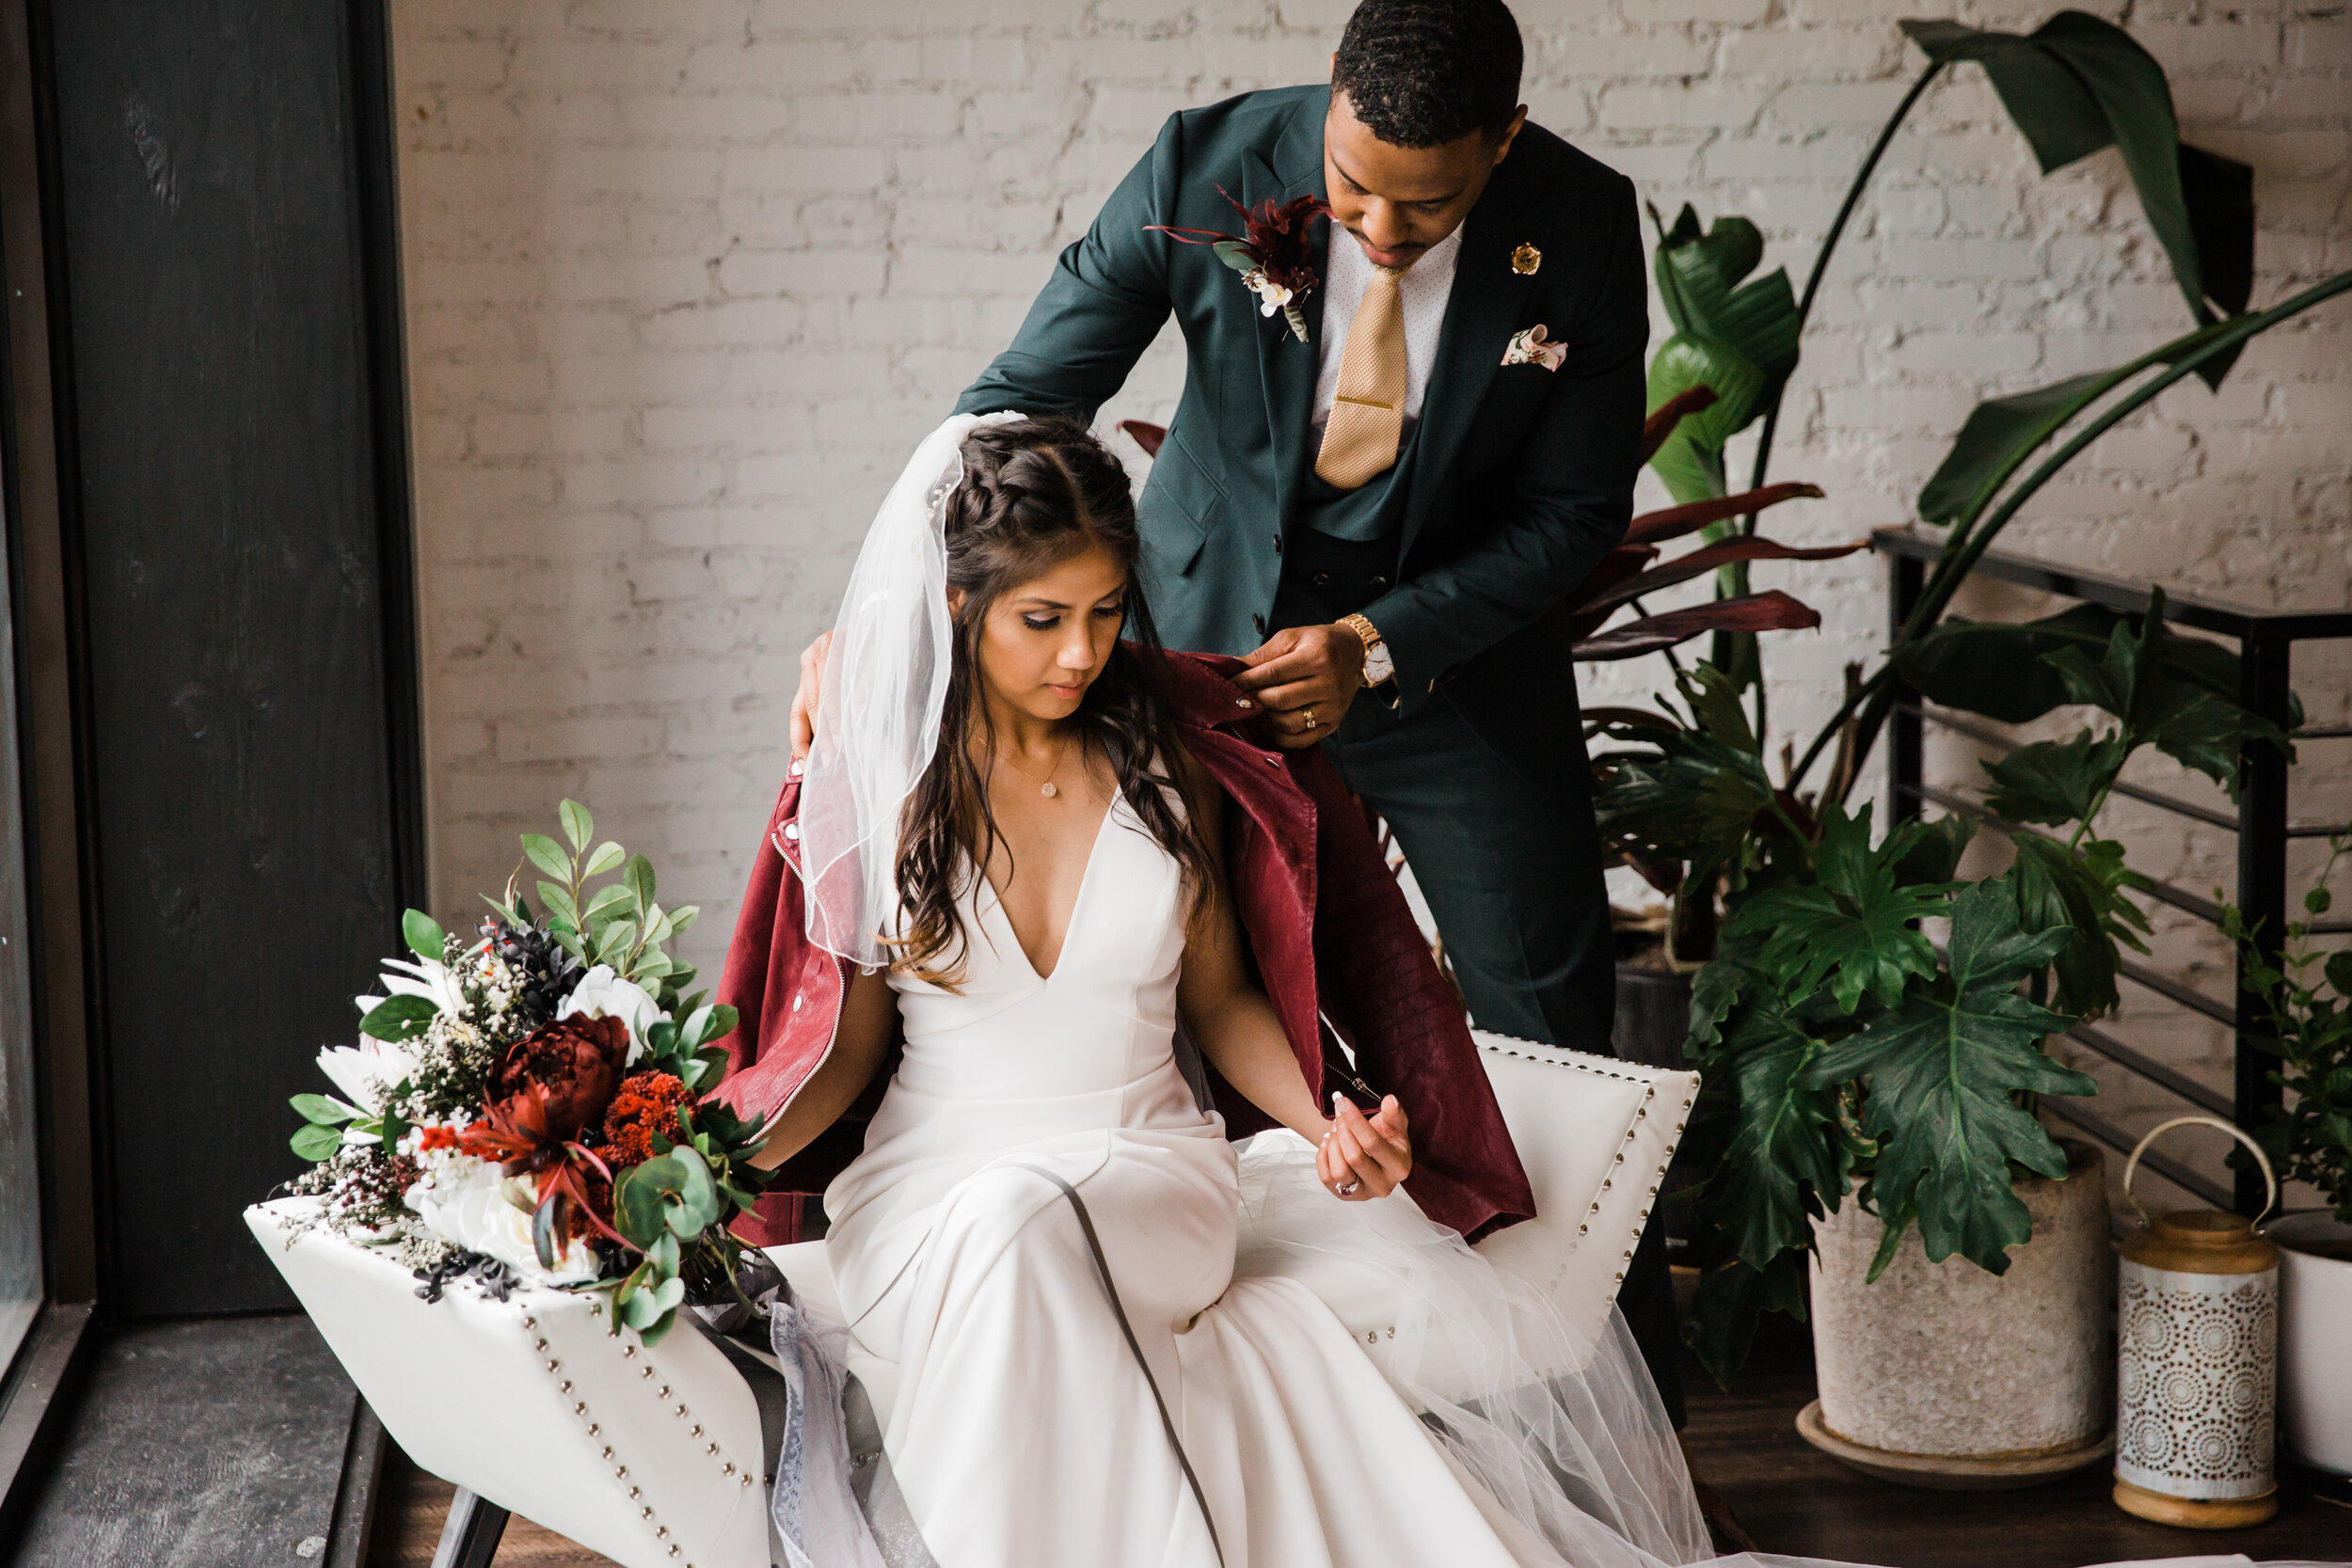 Ruby and Emerald Wedding at Habitat at Seya shot by Megapixels Media Top Wedding Photographers in Baltimore Maryland DCMulticultural Couple styled shoot (18 of 136).jpg